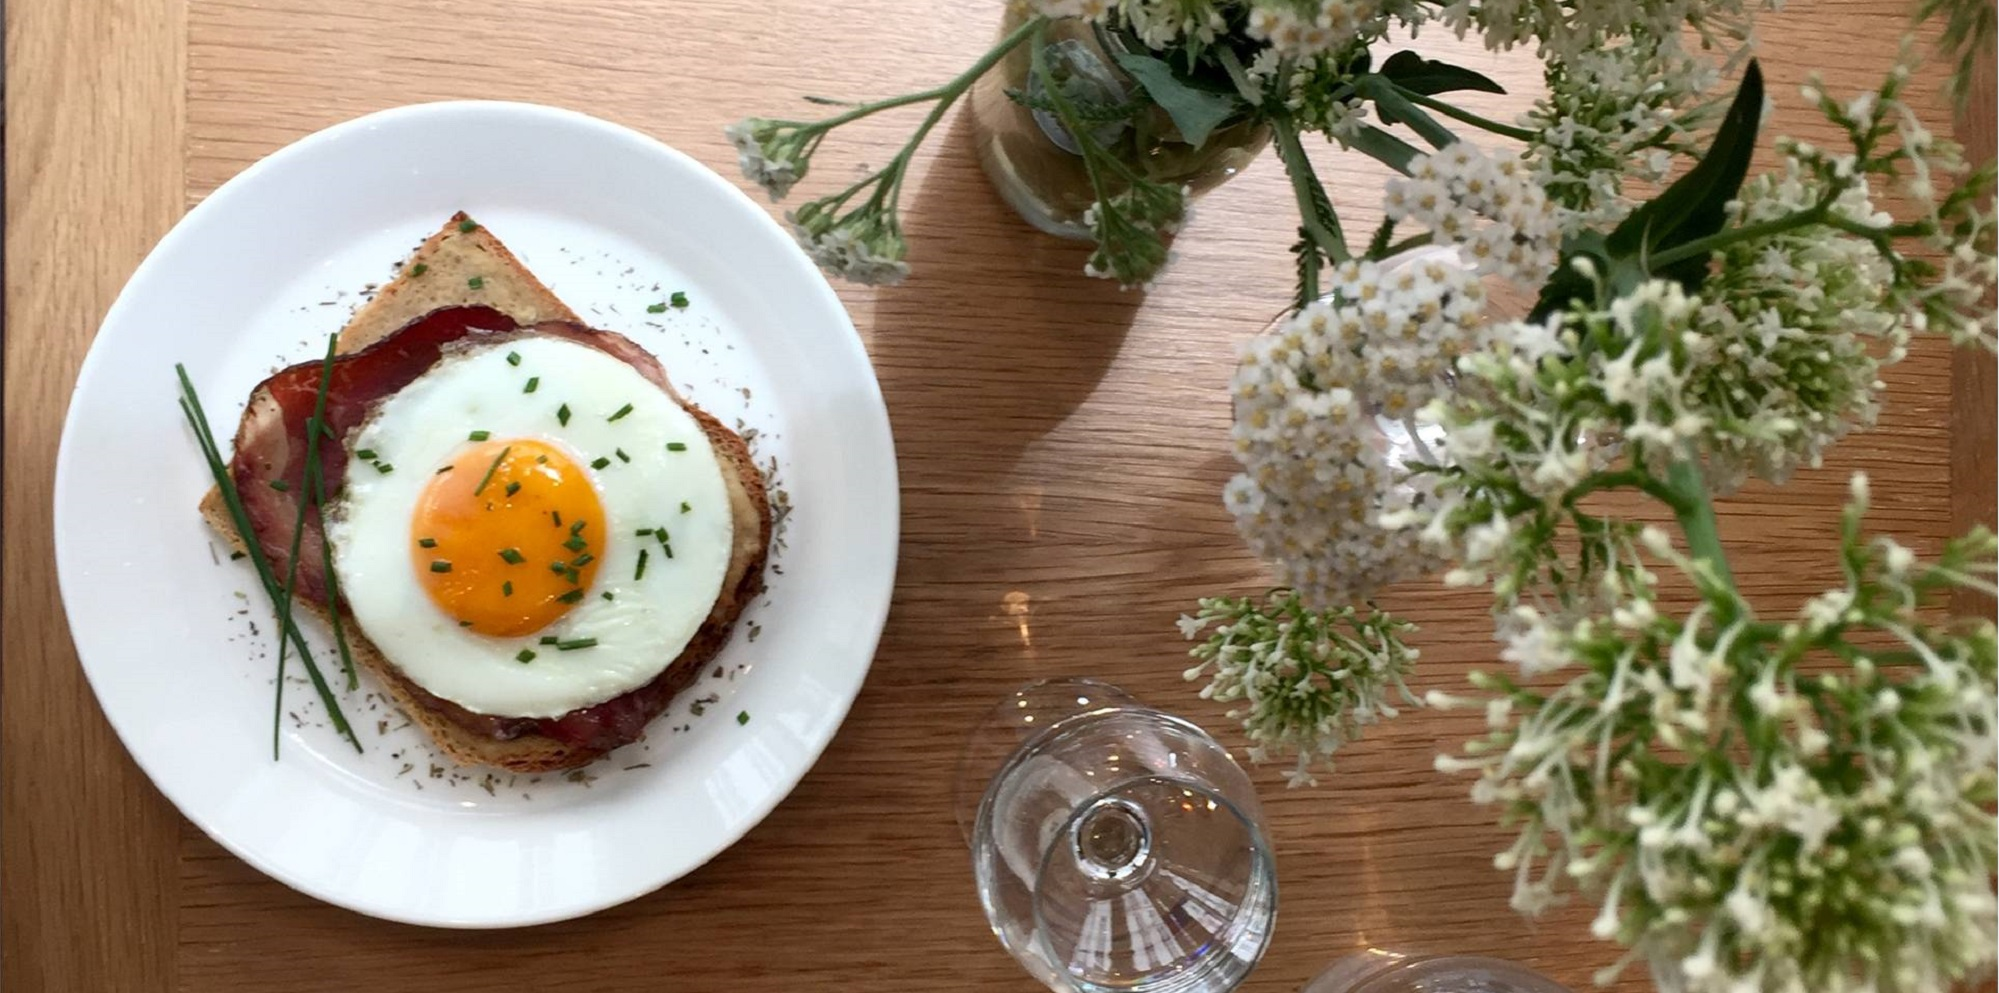 Brunch Comptoir Poilâne (75006 Paris)